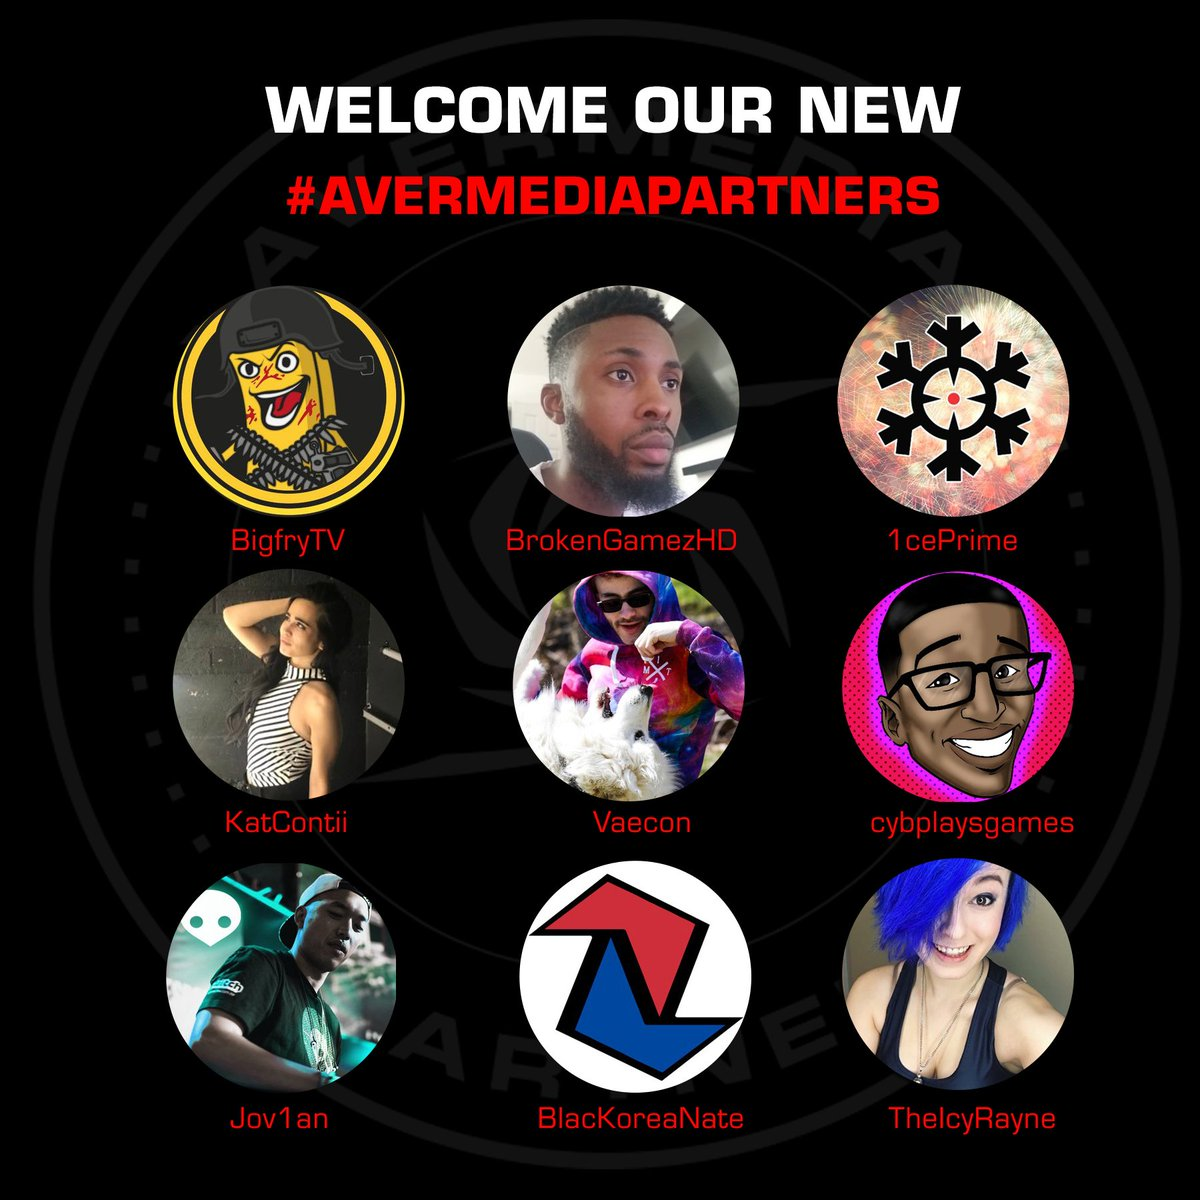 We are very excited to welcome these creators & streamers to our #AVerMediaPartner program.